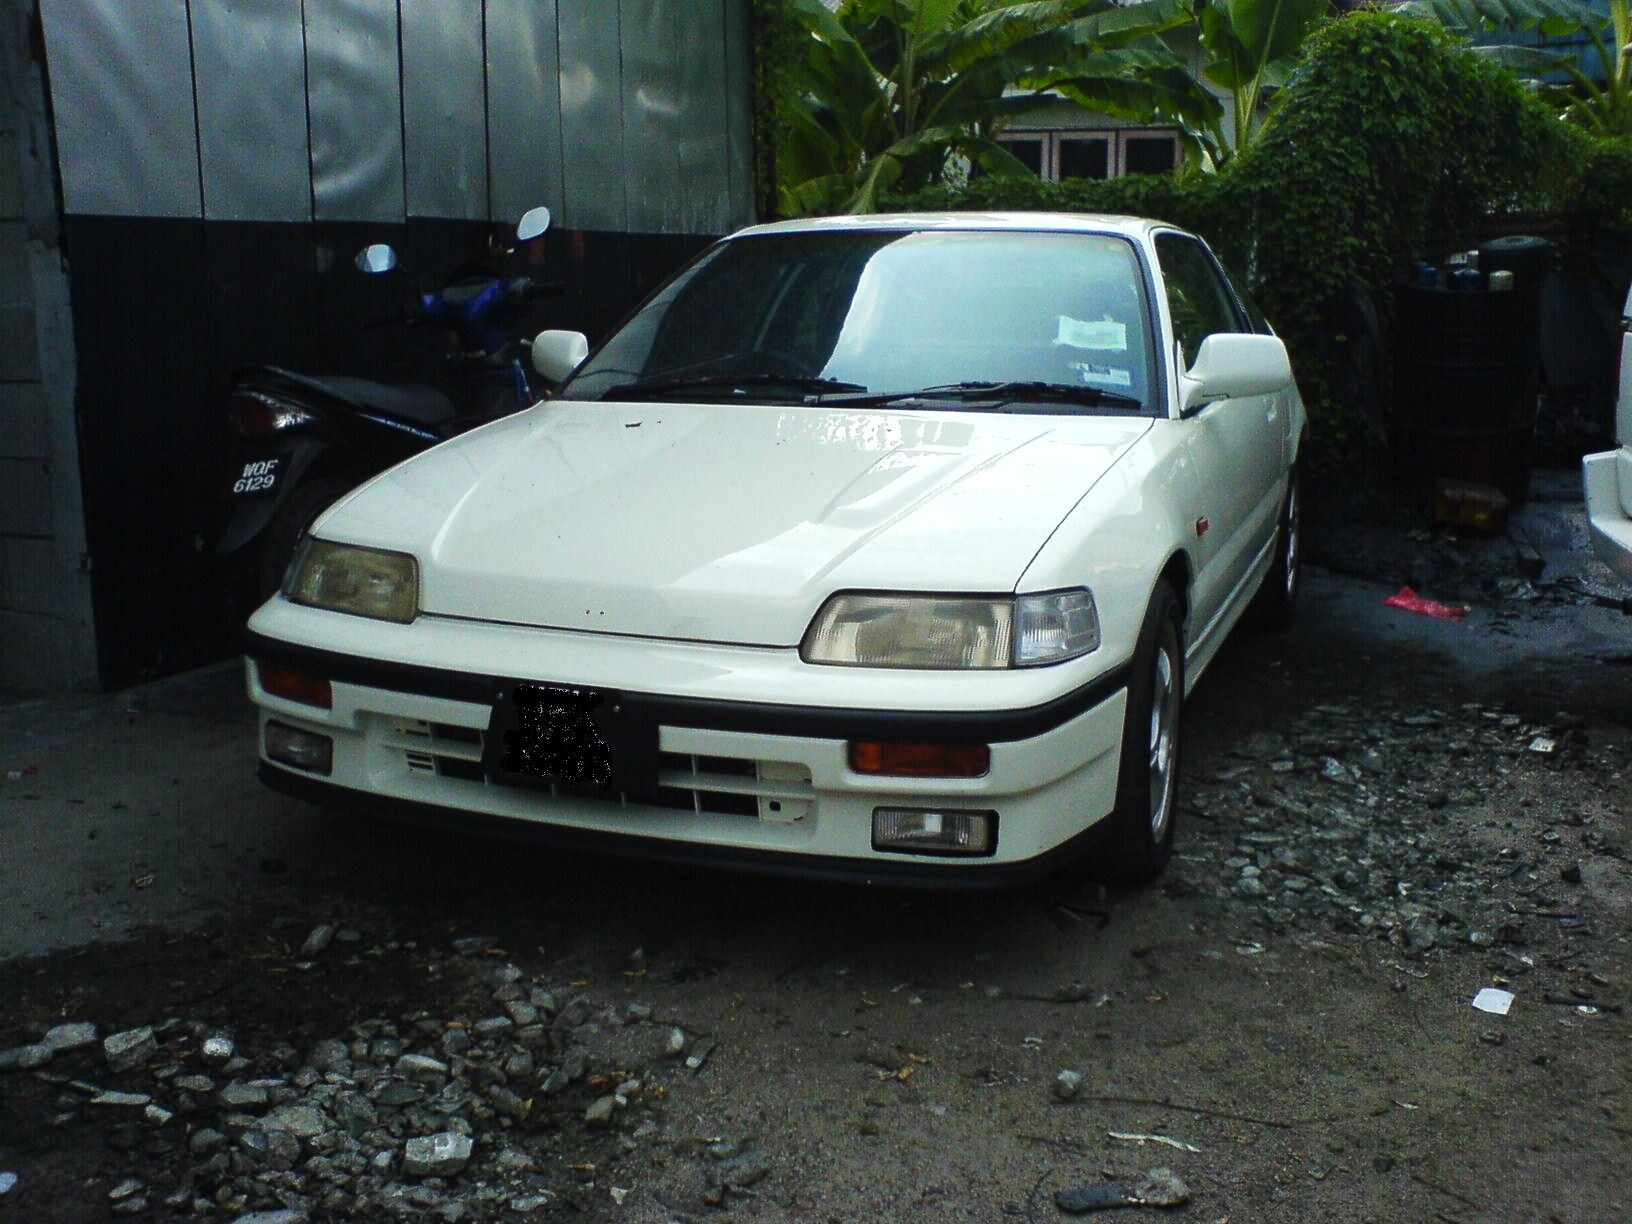 An Old Friend Revisited The 2nd Generation Honda CRX